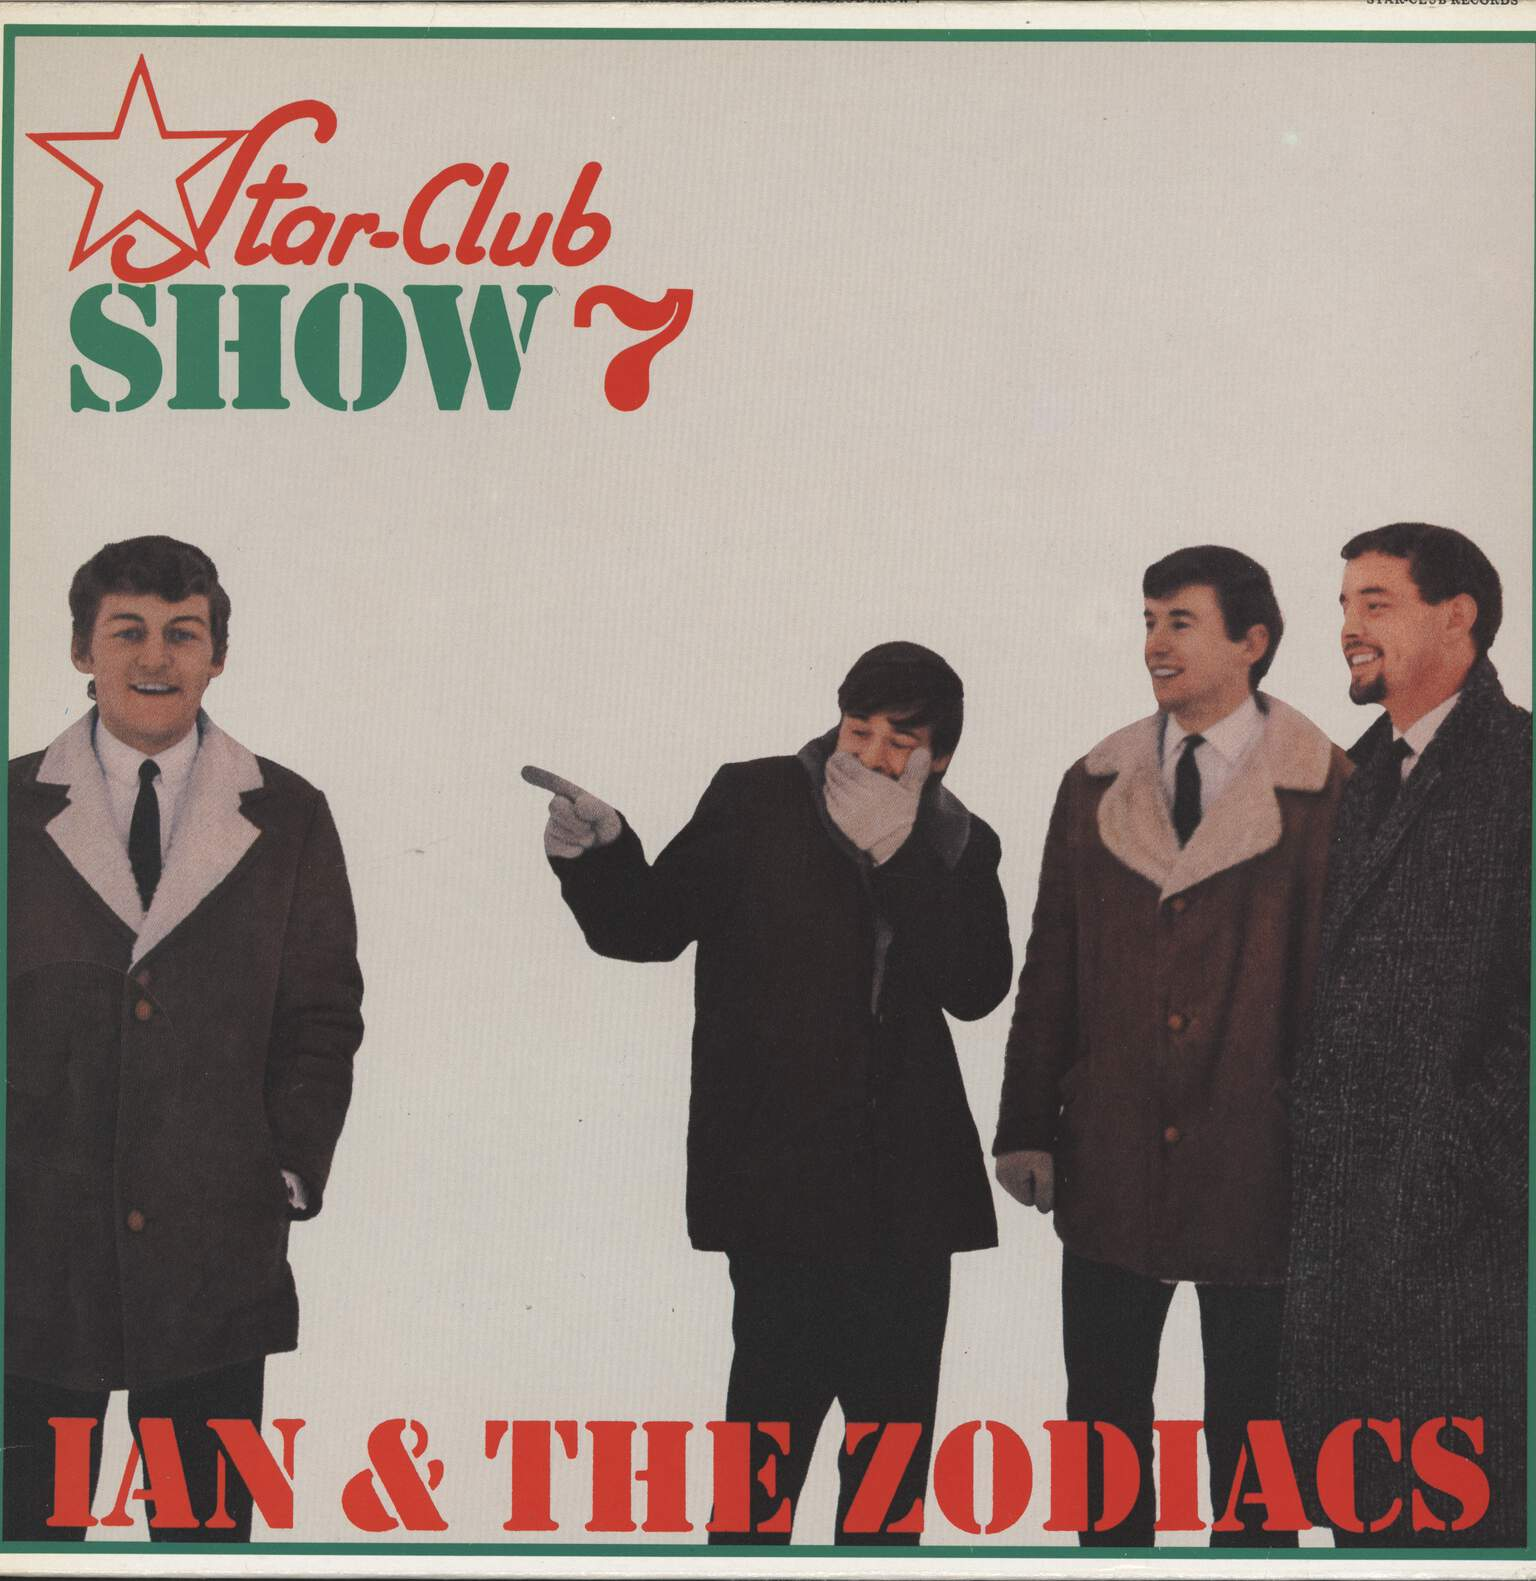 Ian & The Zodiacs: Star-Club Show 7, LP (Vinyl)